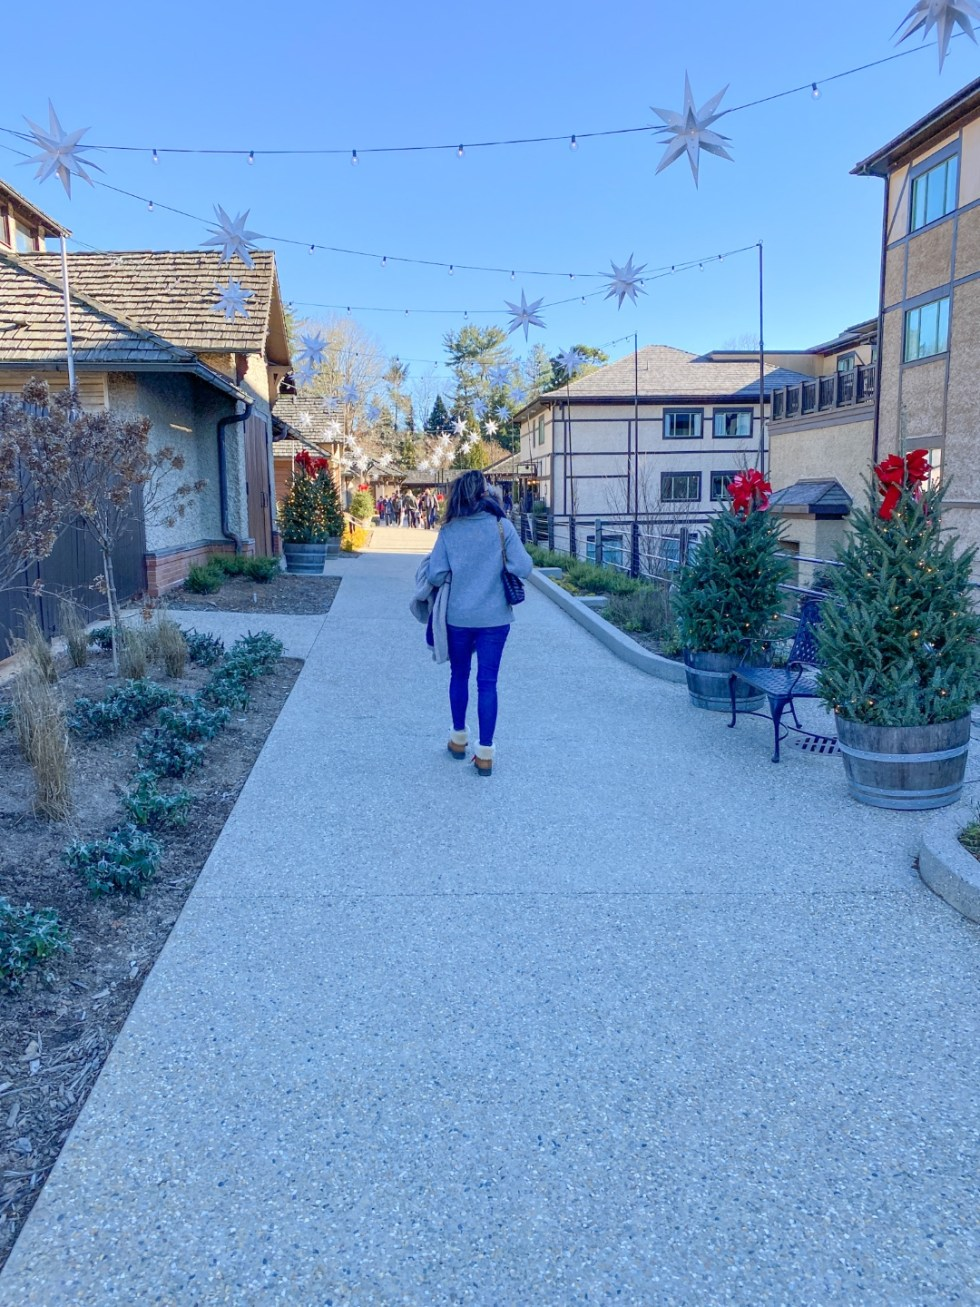 Christmas in Asheville: a Weekend Getaway During the Holidays - I'm Fixin' To - @imfixintoblog |Christmas in Asheville NC by popular NC lifestyle blog, I'm Fixin' To: image of Antler Hill Village.